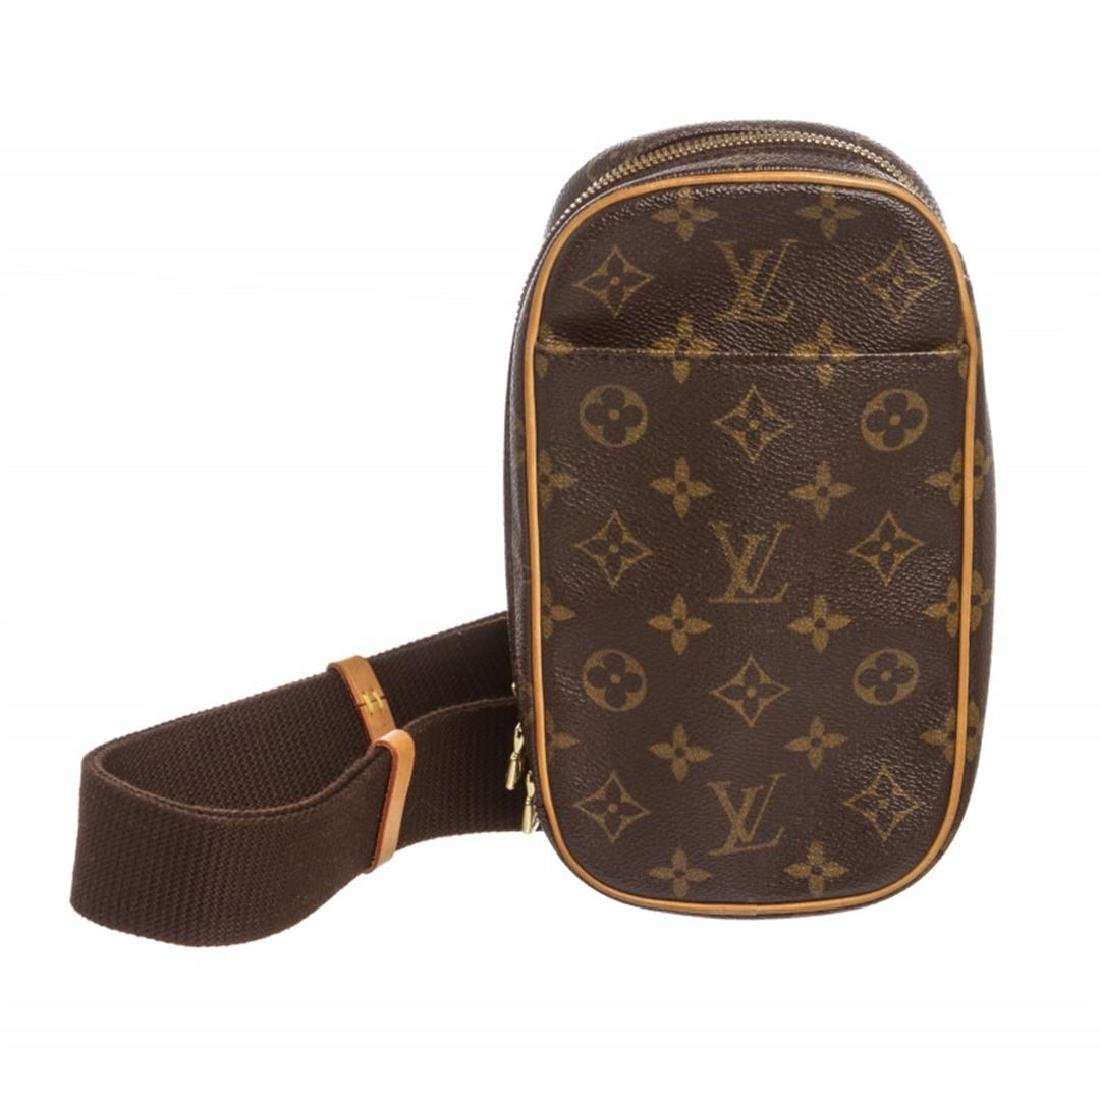 Louis Vuitton Monogram Canvas Leather Gange Crossbody